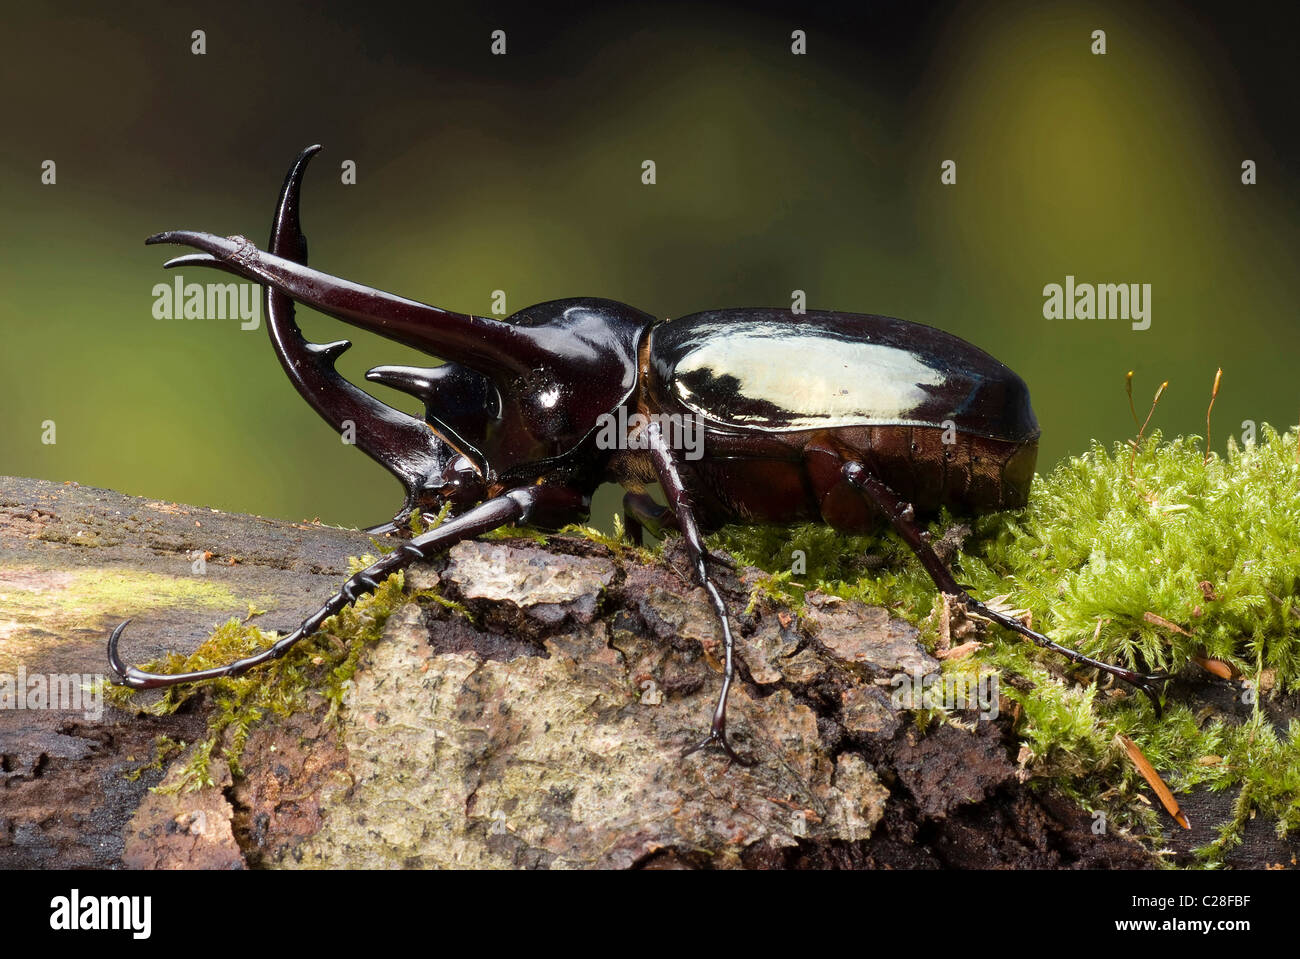 Three-horned Beetle, Atlas Beetle (Chalcosoma caucasus) on bark. One of the largest insects on Earth. - Stock Image